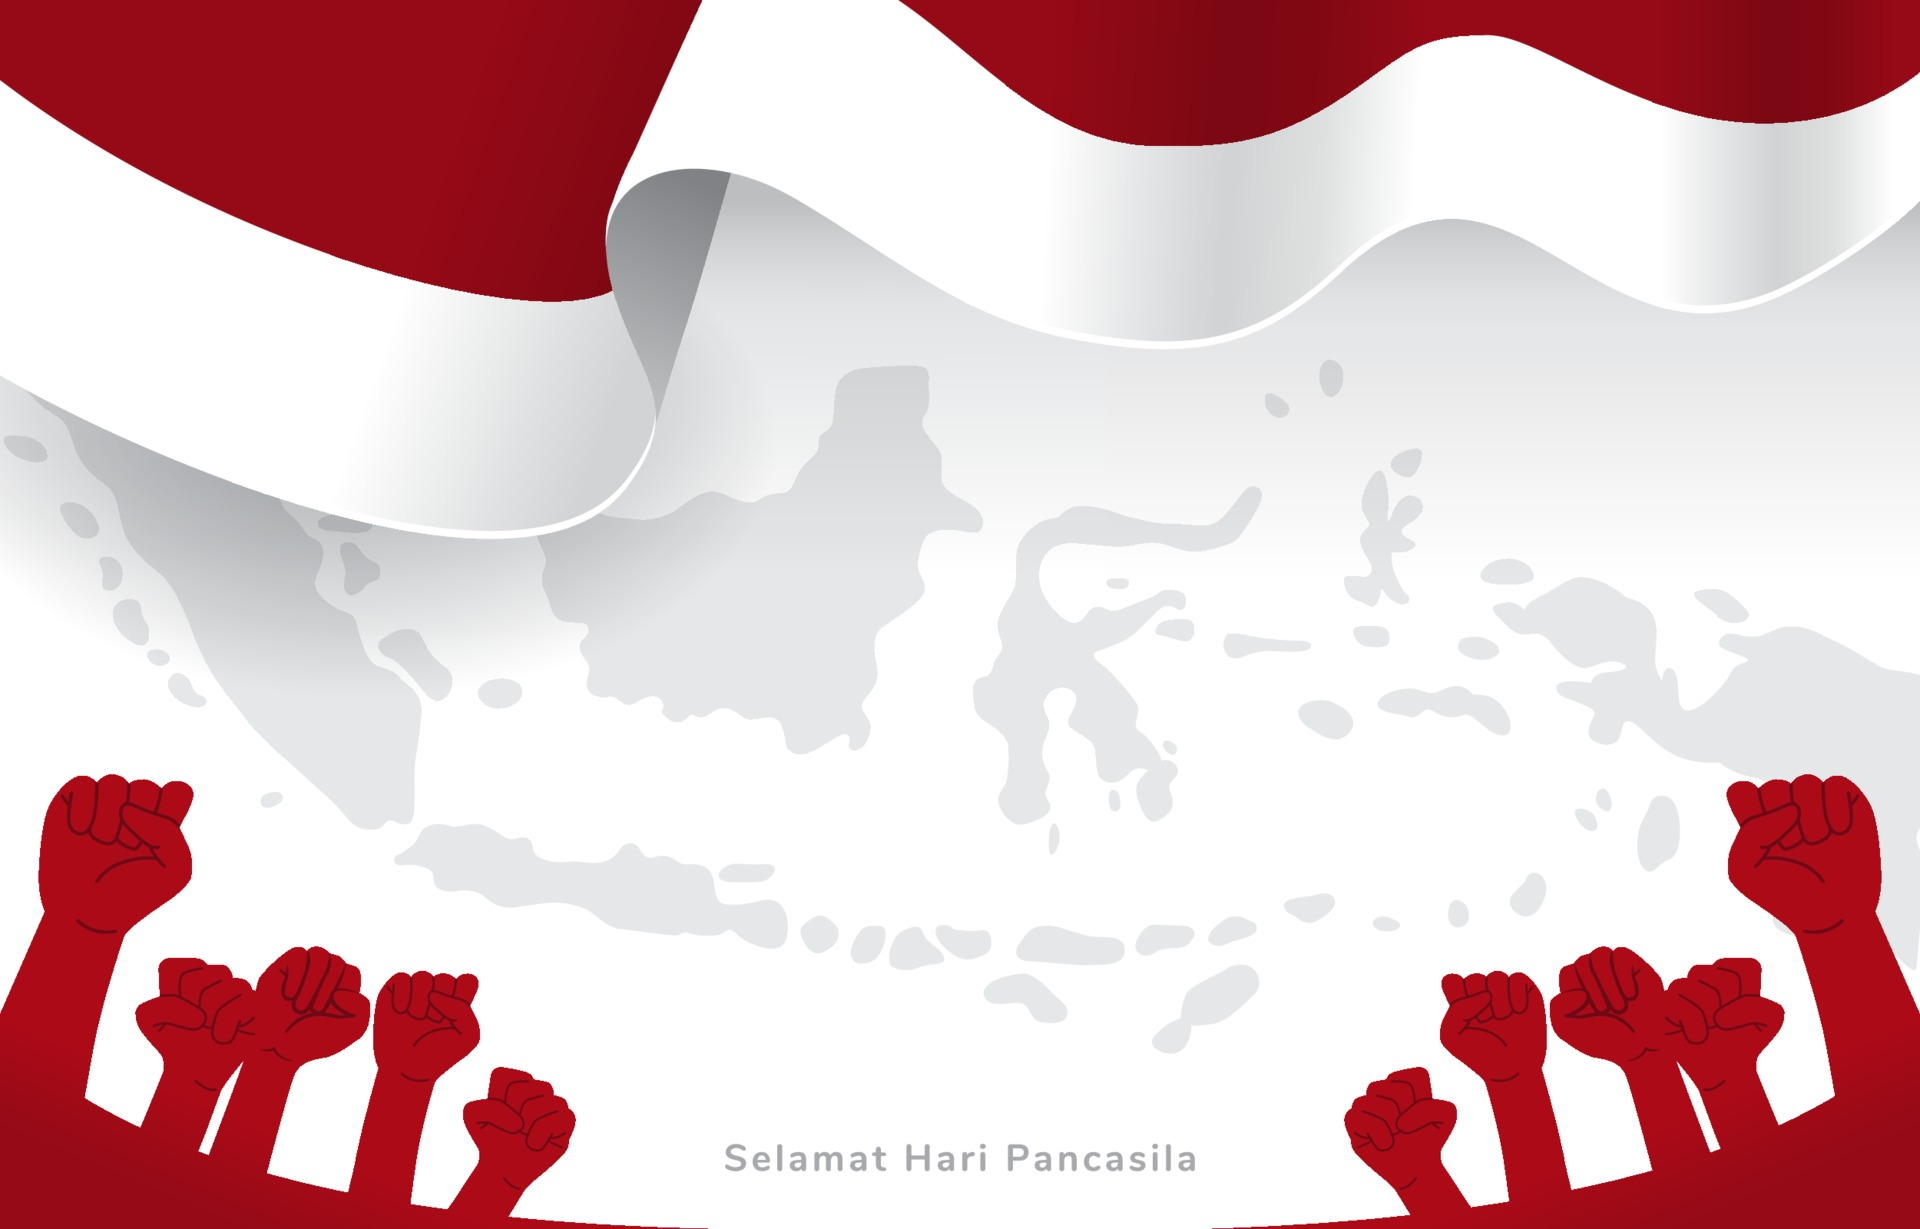 Indonesian Celebrating Pancasila Day With Indonesia Map And Flag Background  2188947 Vector Art At Vecteezy